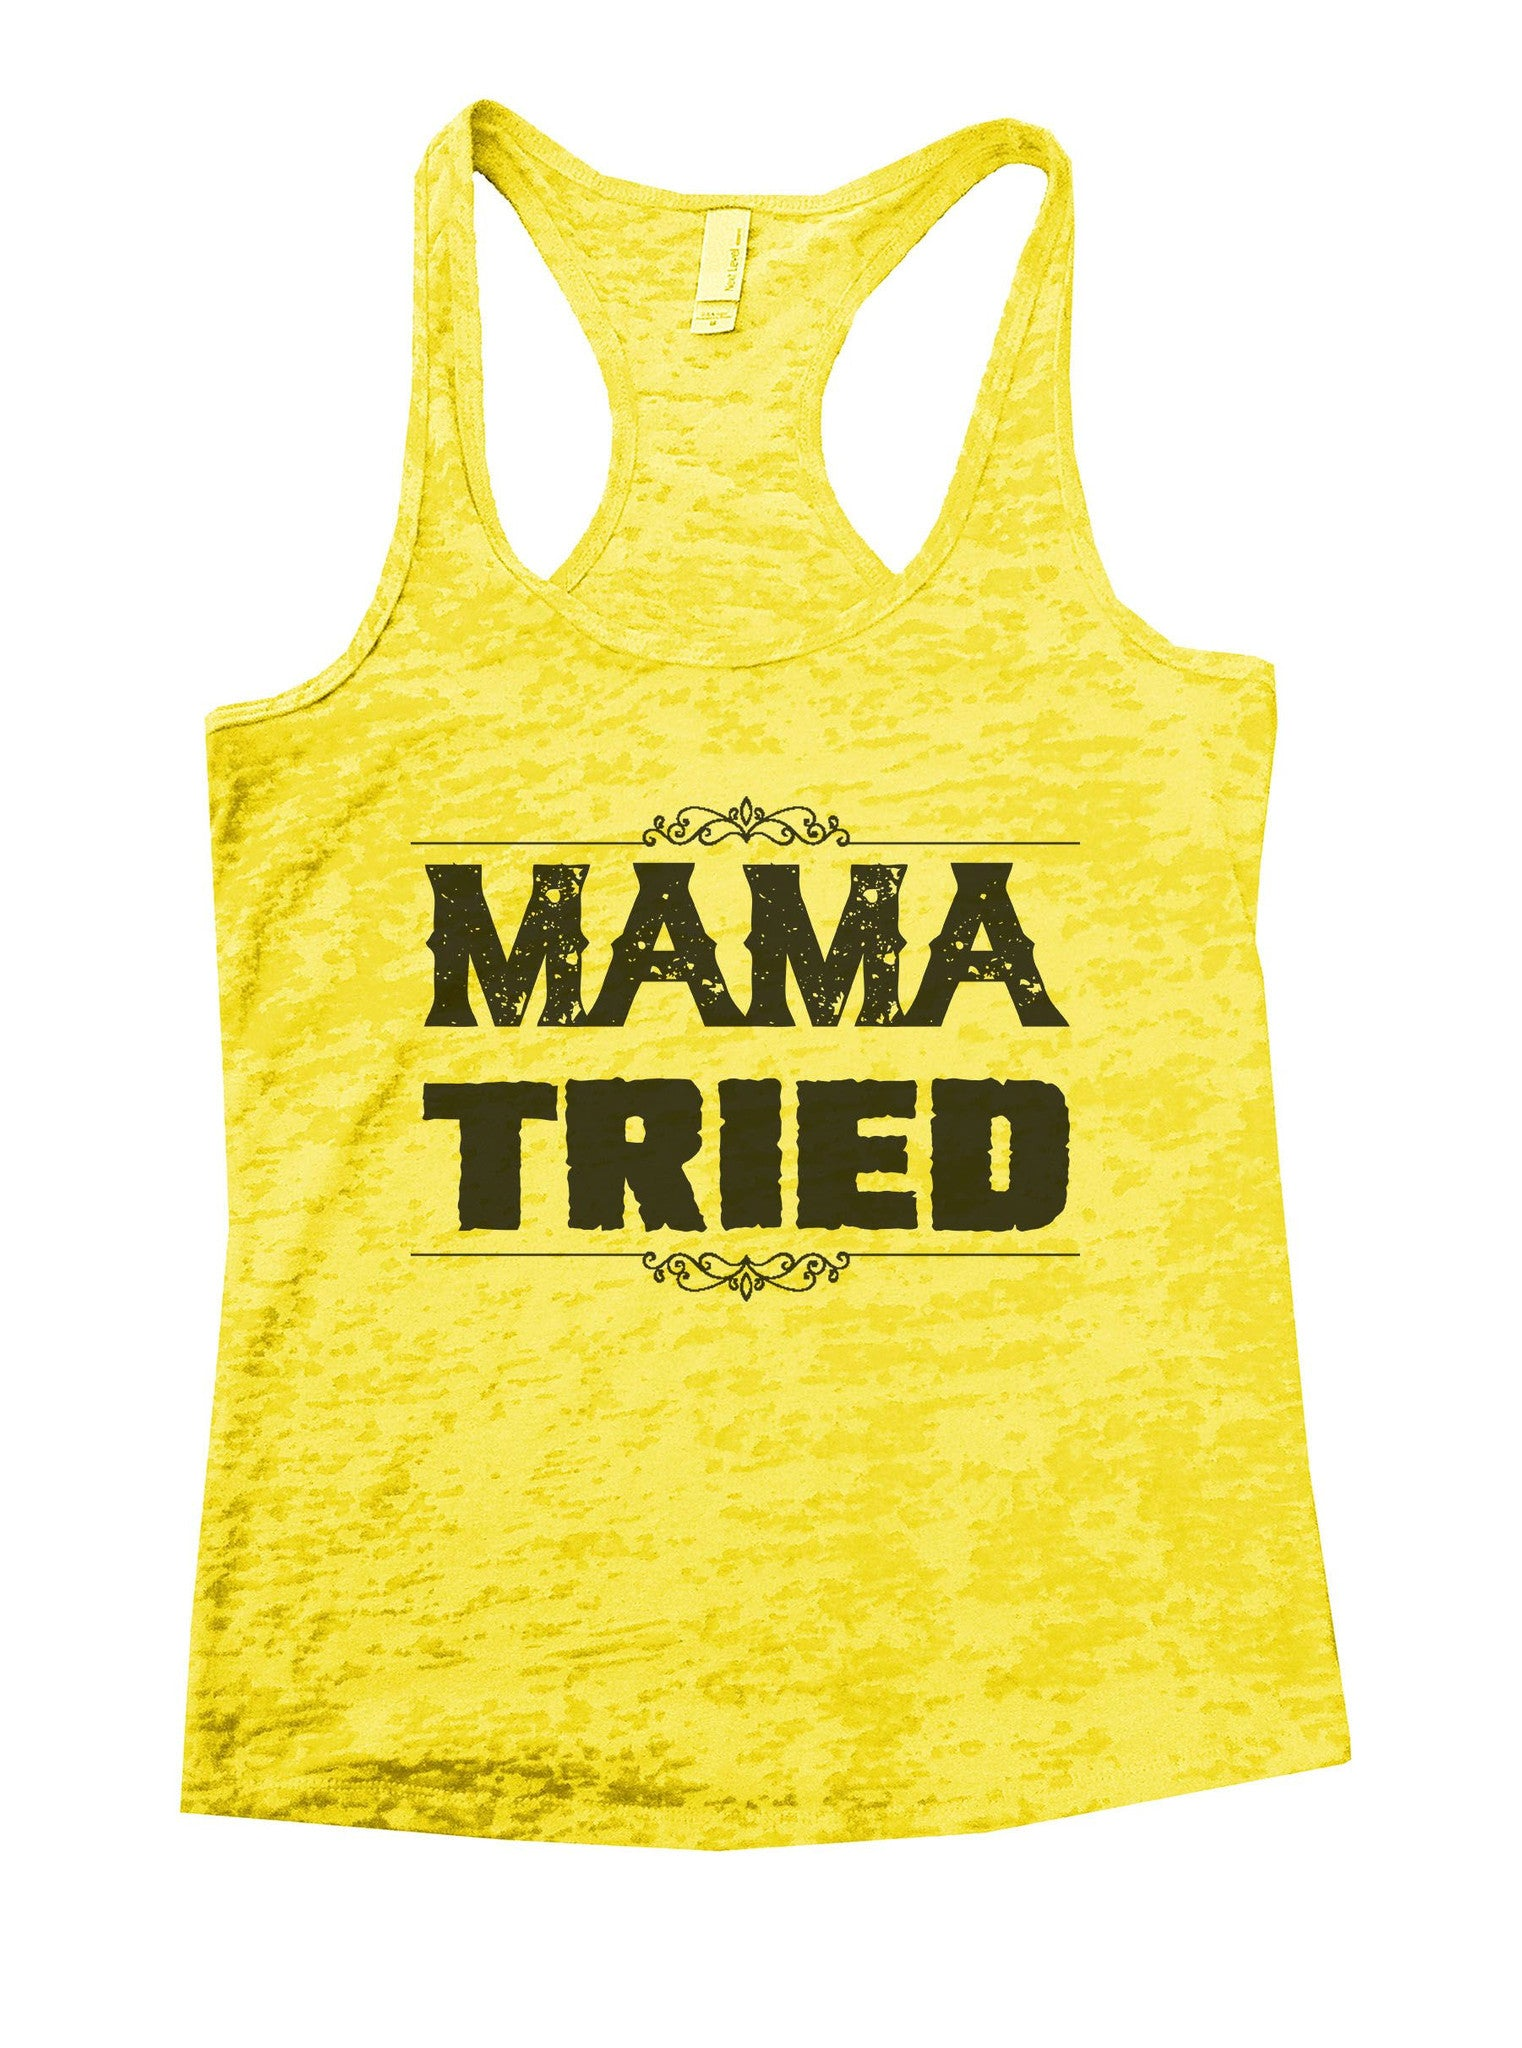 Mama Tried Burnout Tank Top By BurnoutTankTops.com - 886 - Funny Shirts Tank Tops Burnouts and Triblends  - 7